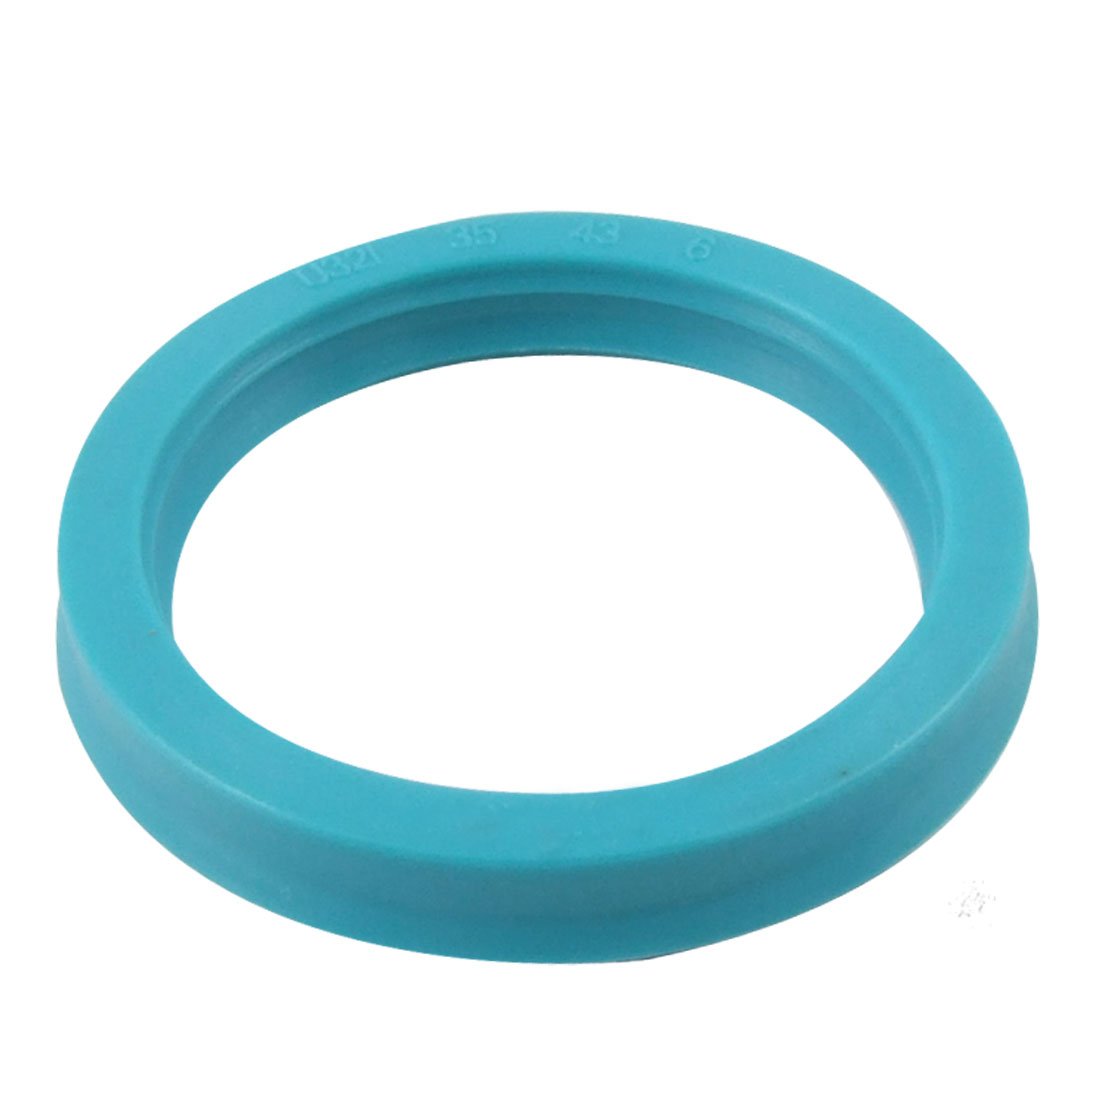 Cyan Blue PU Hydraulic Piston Rod Metric U Cup Oil Seal Ring 35mm x 43mm x 6mm U32i